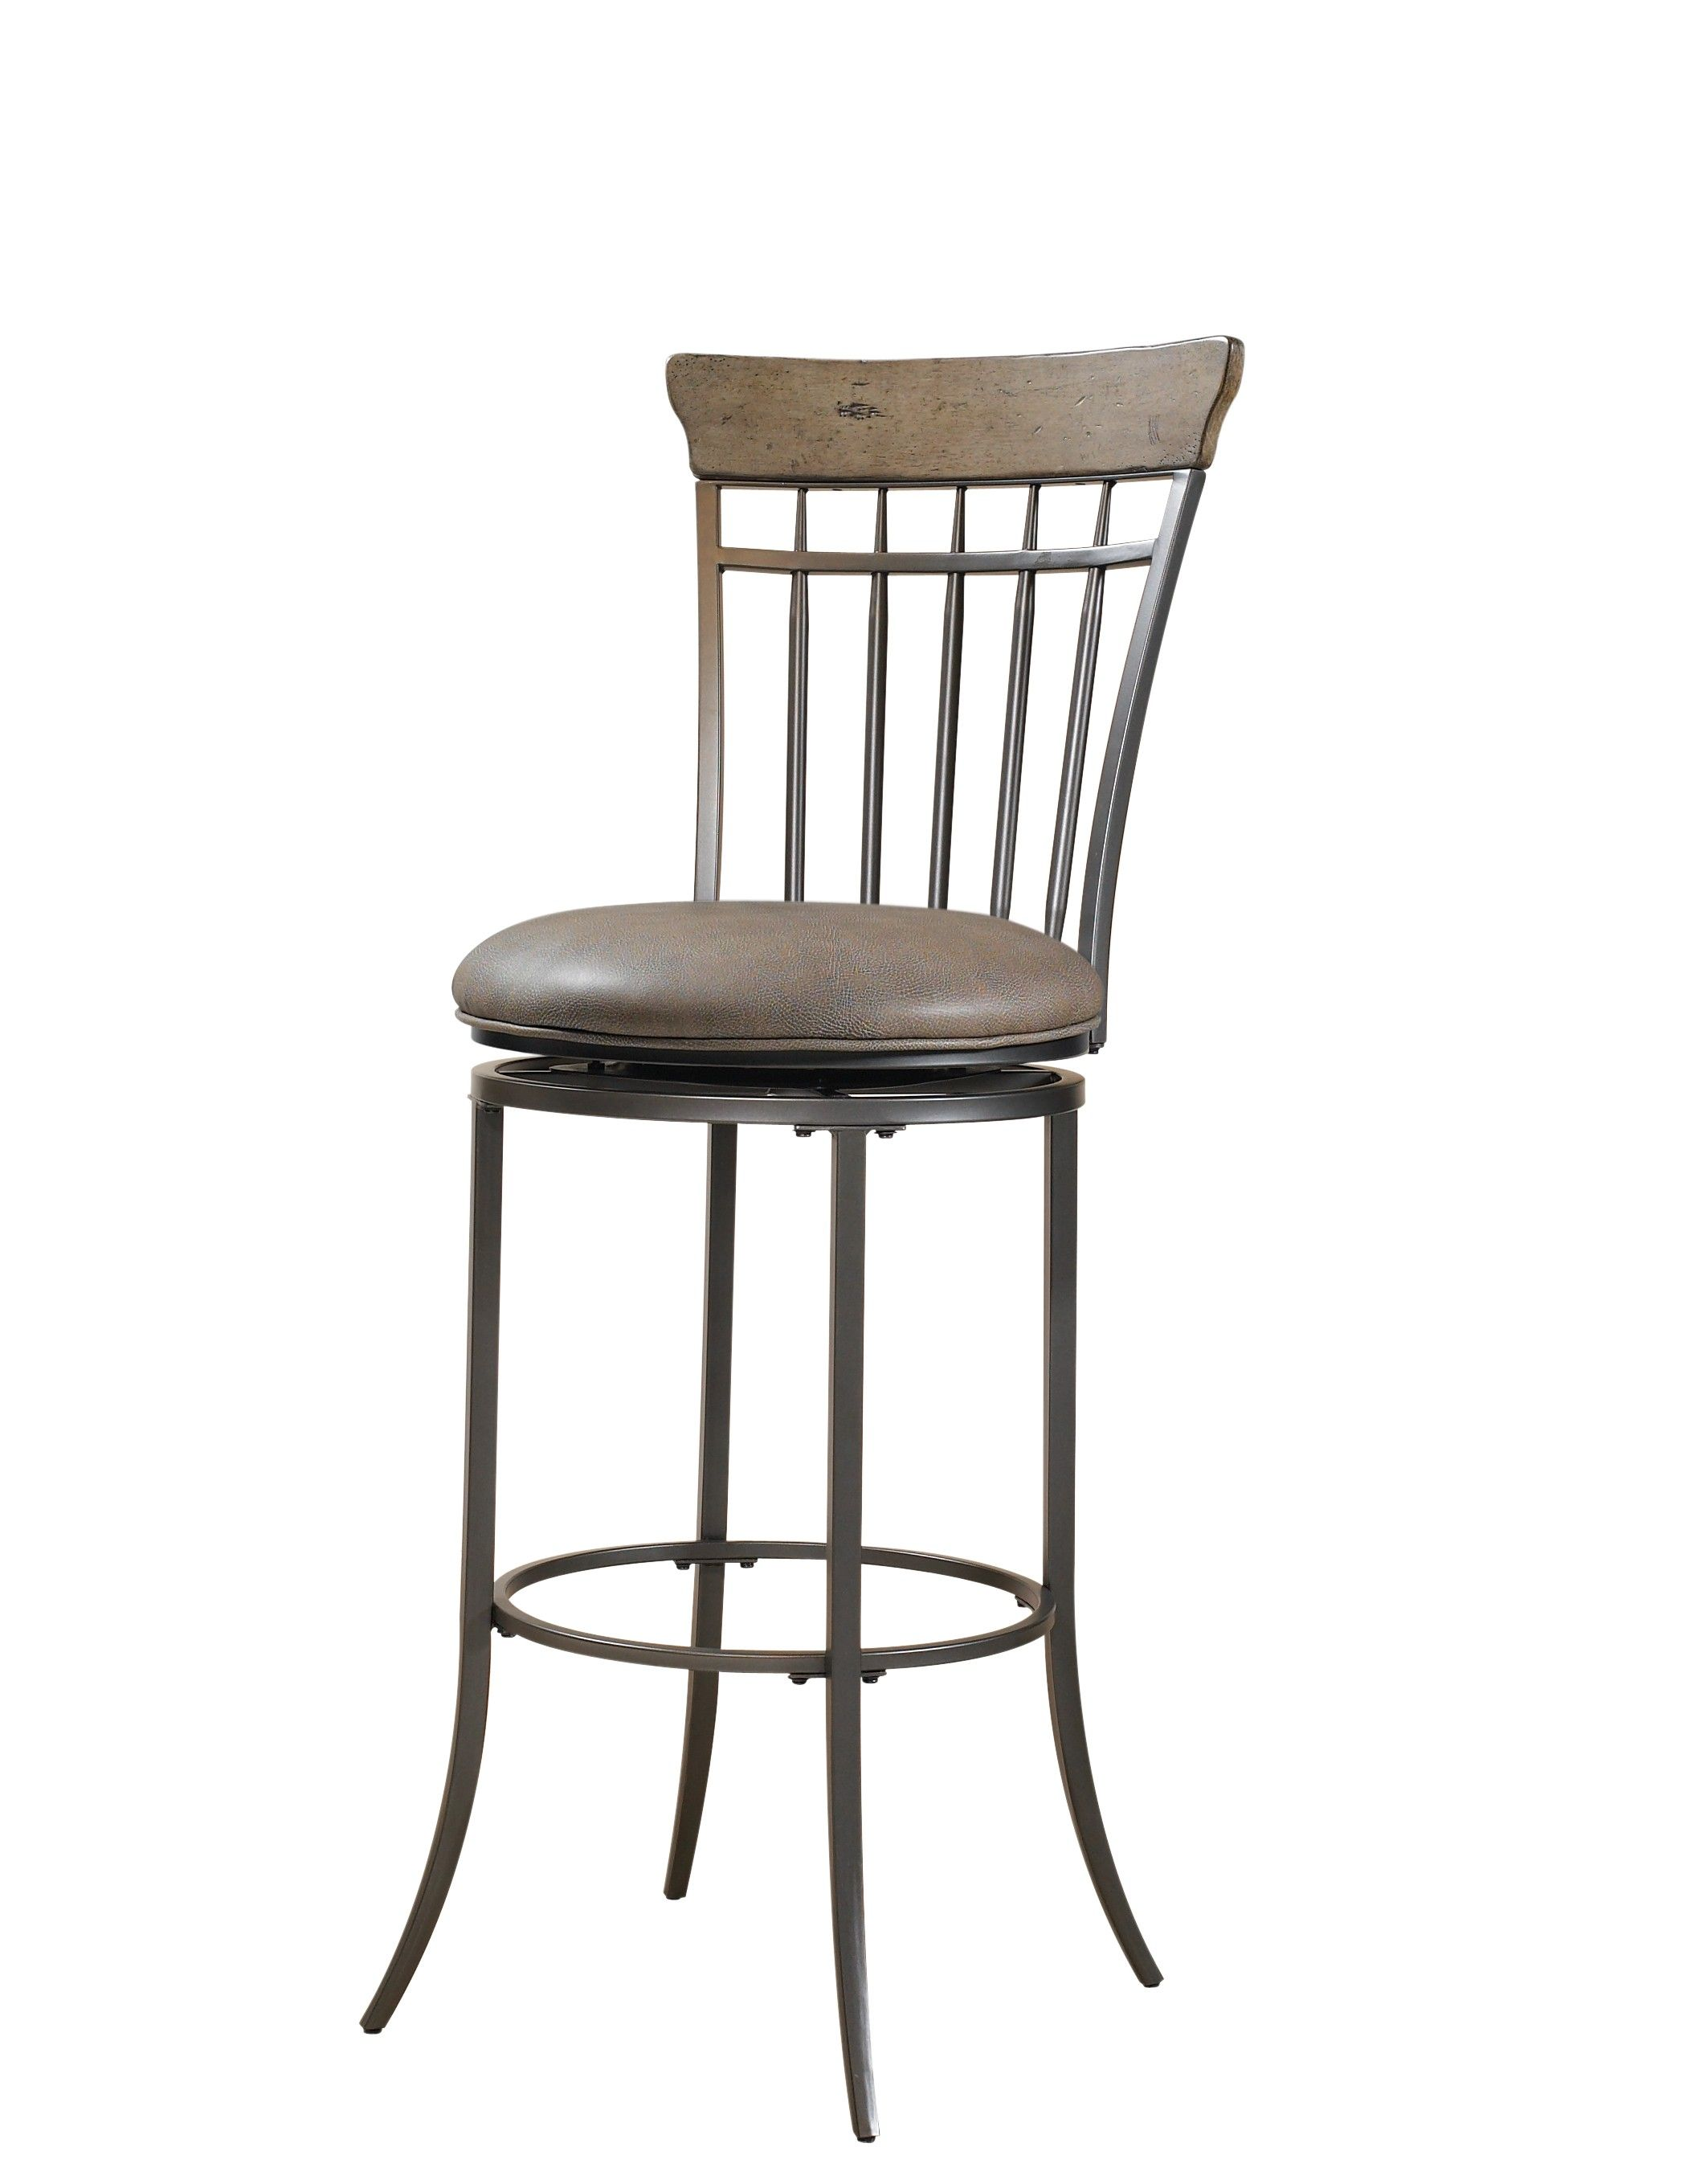 Charleston Desert Tan & Dark Gray Swivel Vertical Spindle Bar